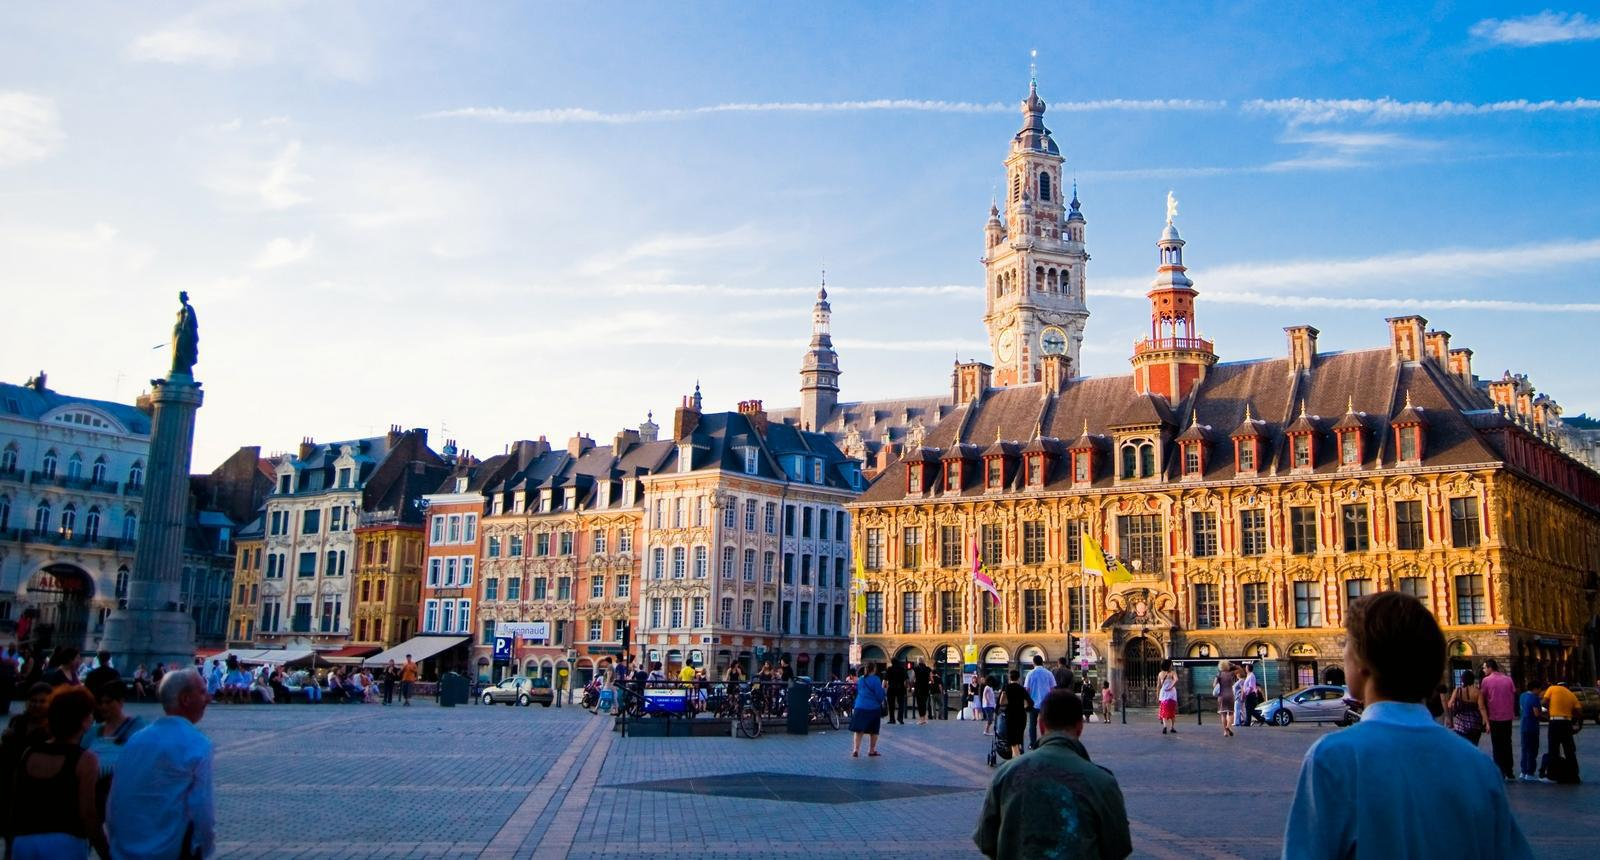 54249_1_lille-grand-place-1428930384.jpg